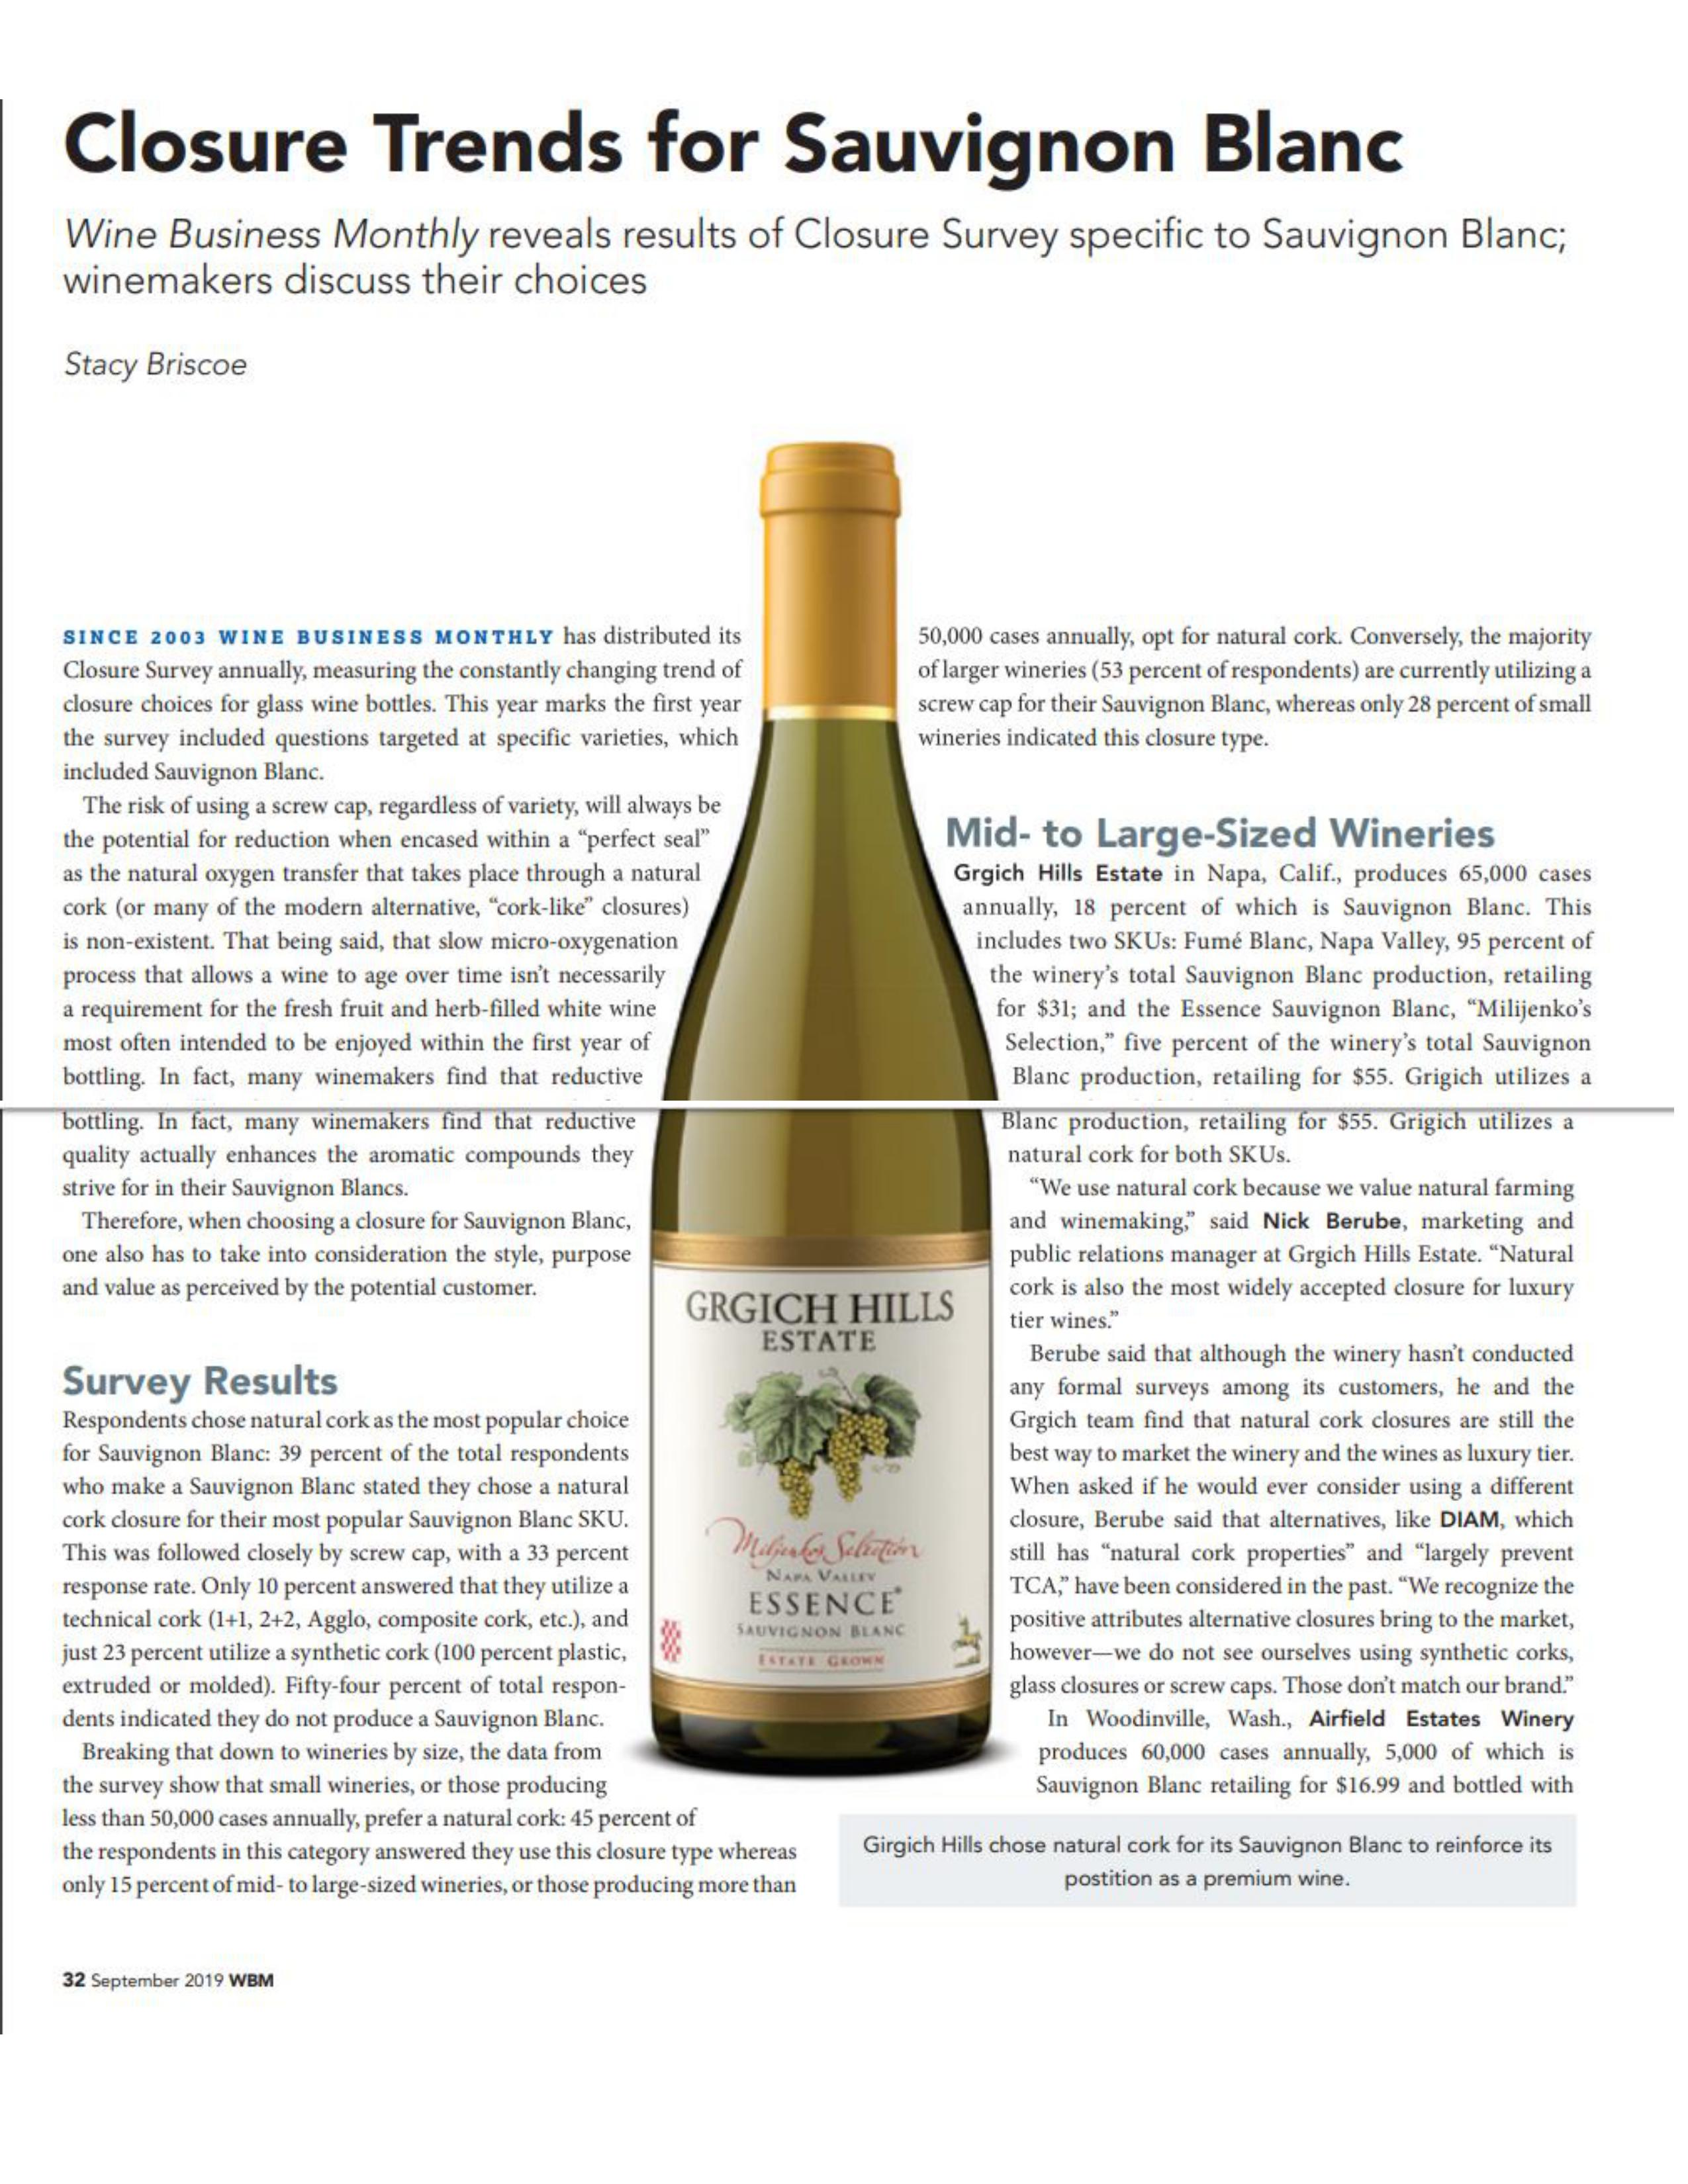 Picture of the Wine Business Article Titled Closure Trends for Sauvignon Blanc.